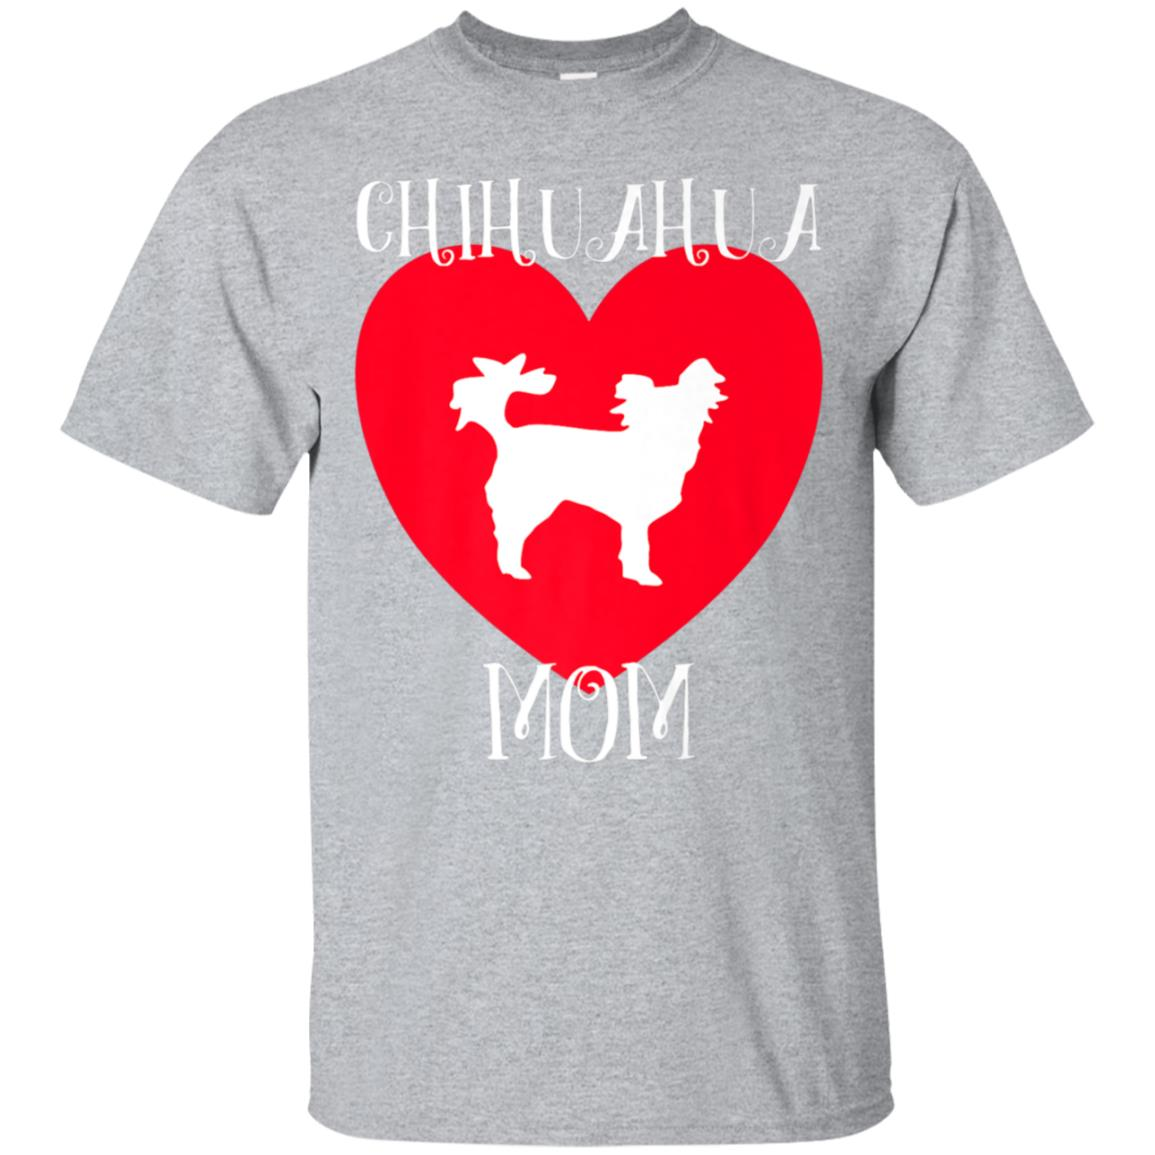 Cute Chihuahua Mom Tshirt - Gift for Dog Lovers 99promocode